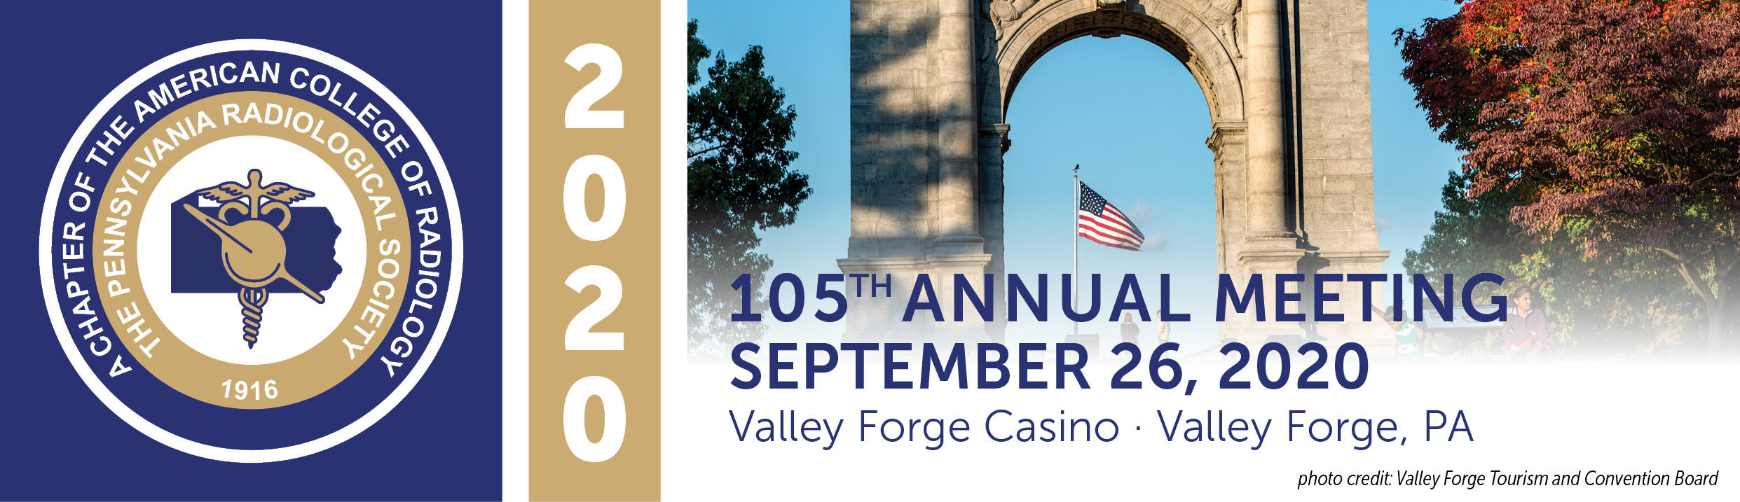 PA Radiological Society 105th Annual Meeting Sept. 26, 2020, Valley Forge Casino, Valley Forge PA